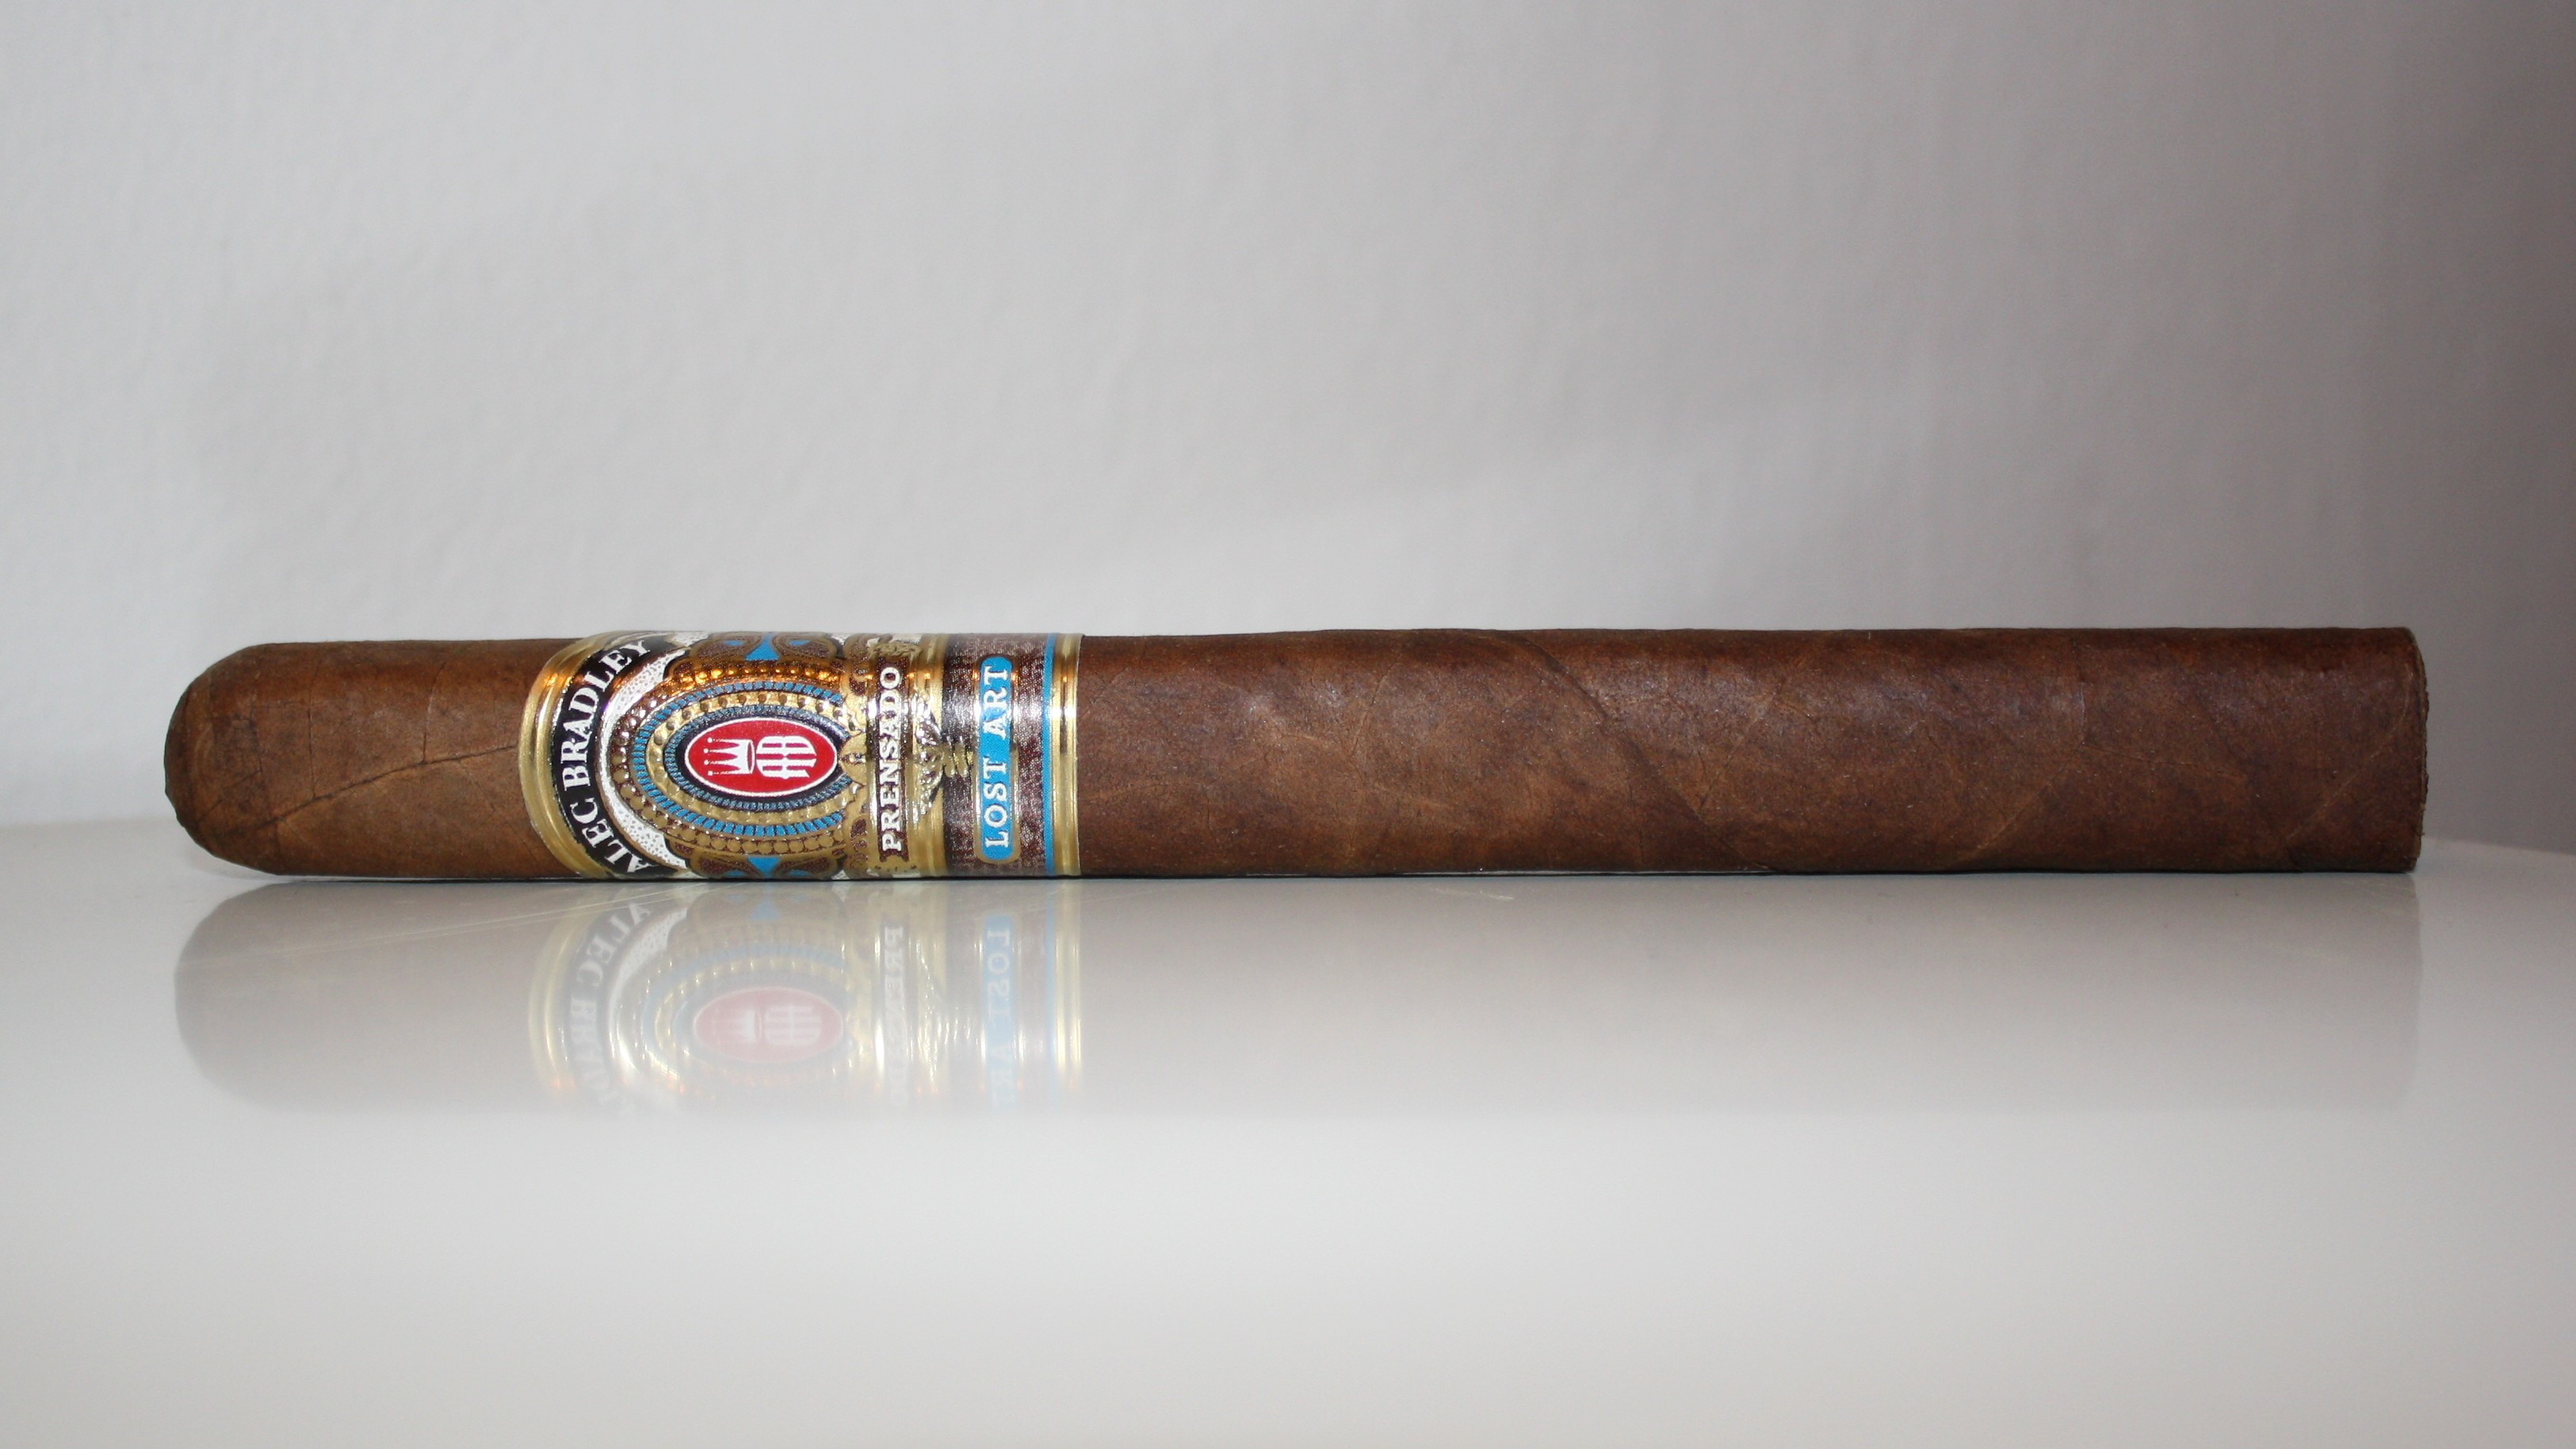 alec bradley prensado lost art churchill review